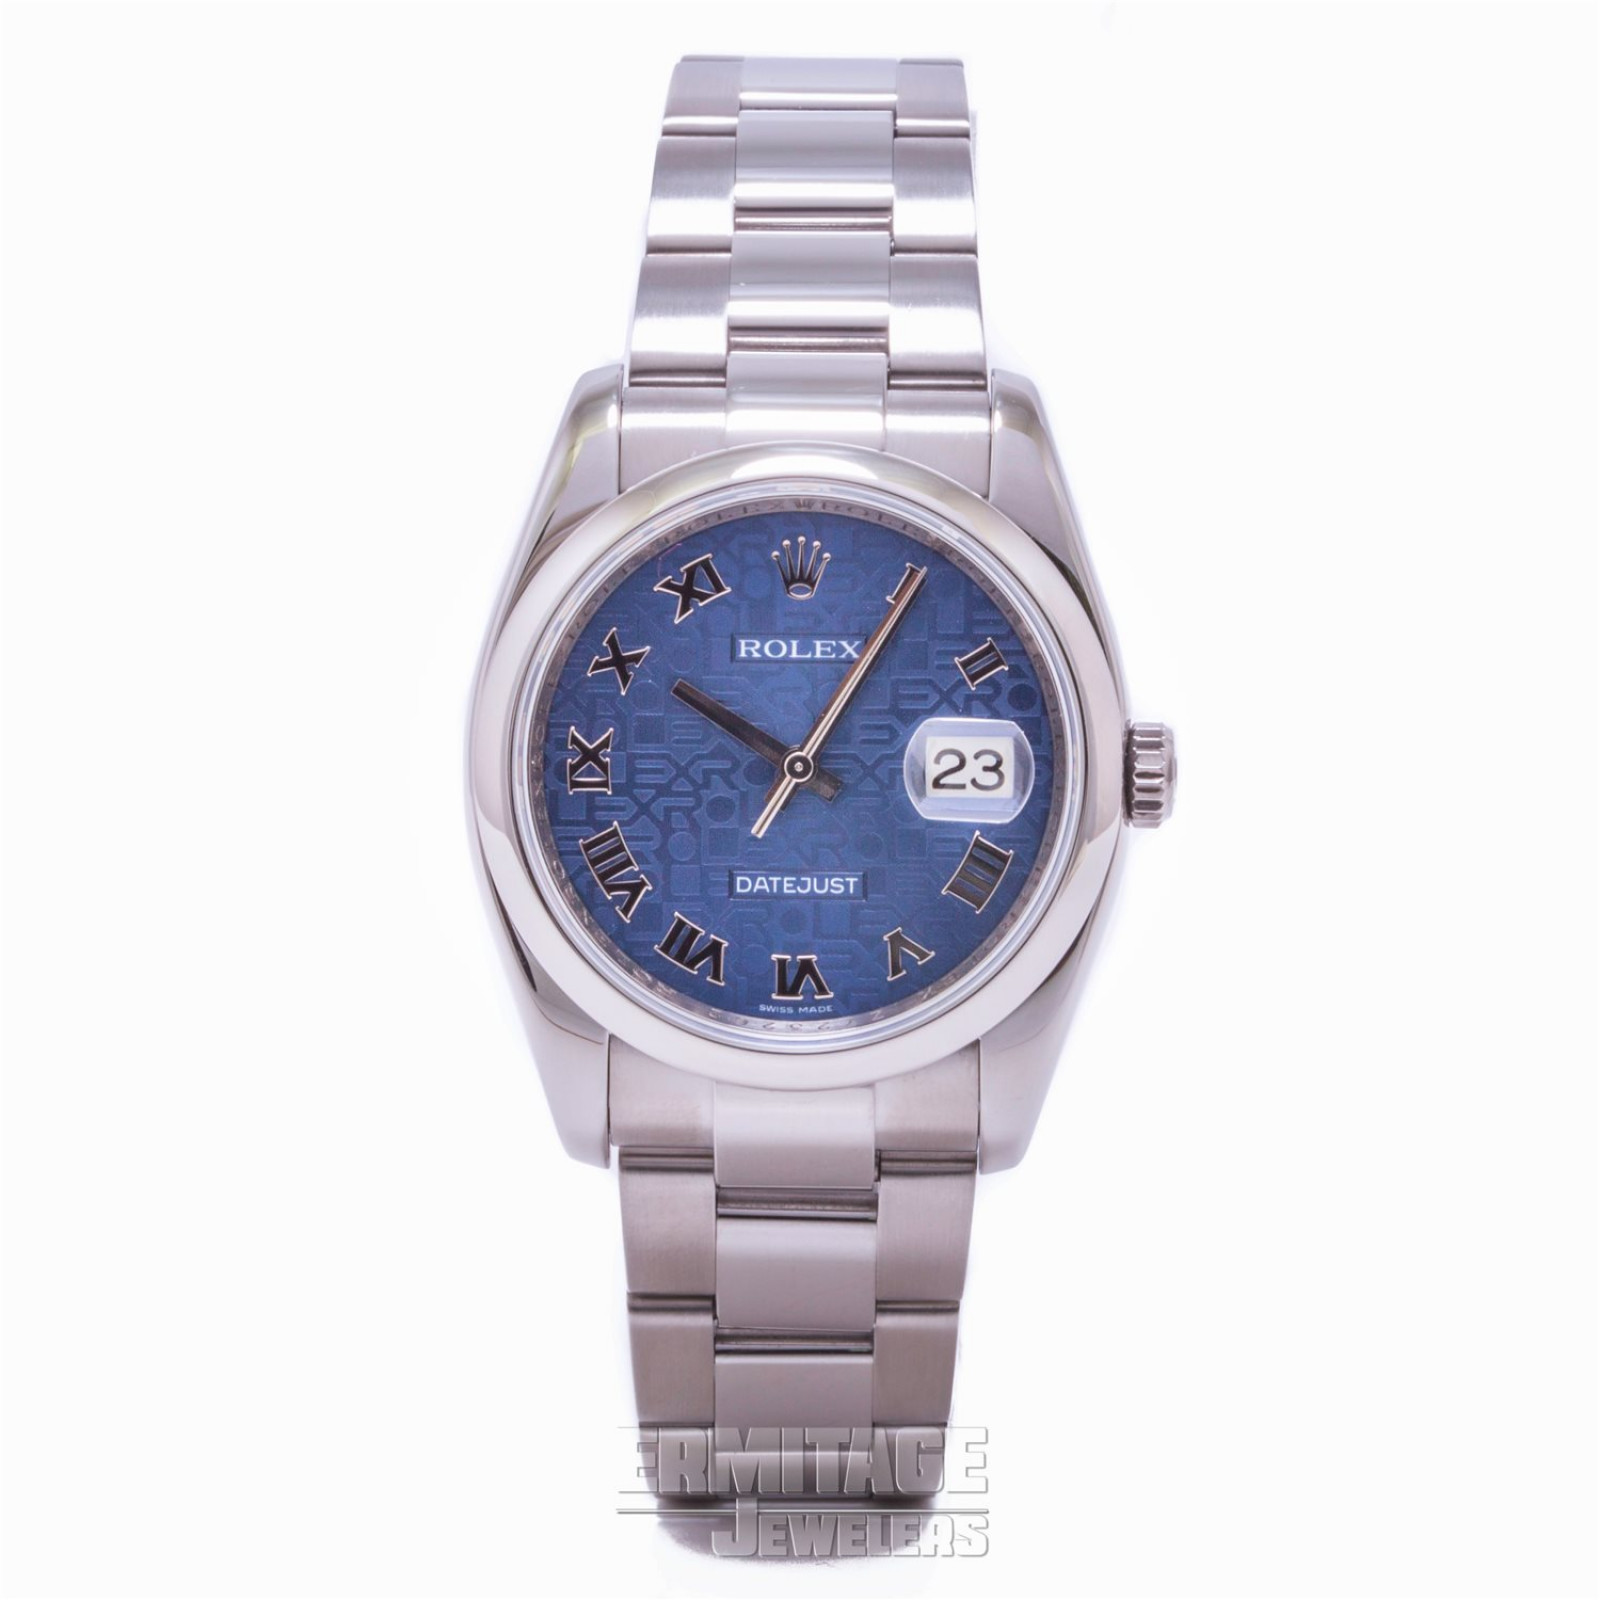 36 mm Rolex Datejust 116200 Steel on Oyster with Blue Jubilee Dial